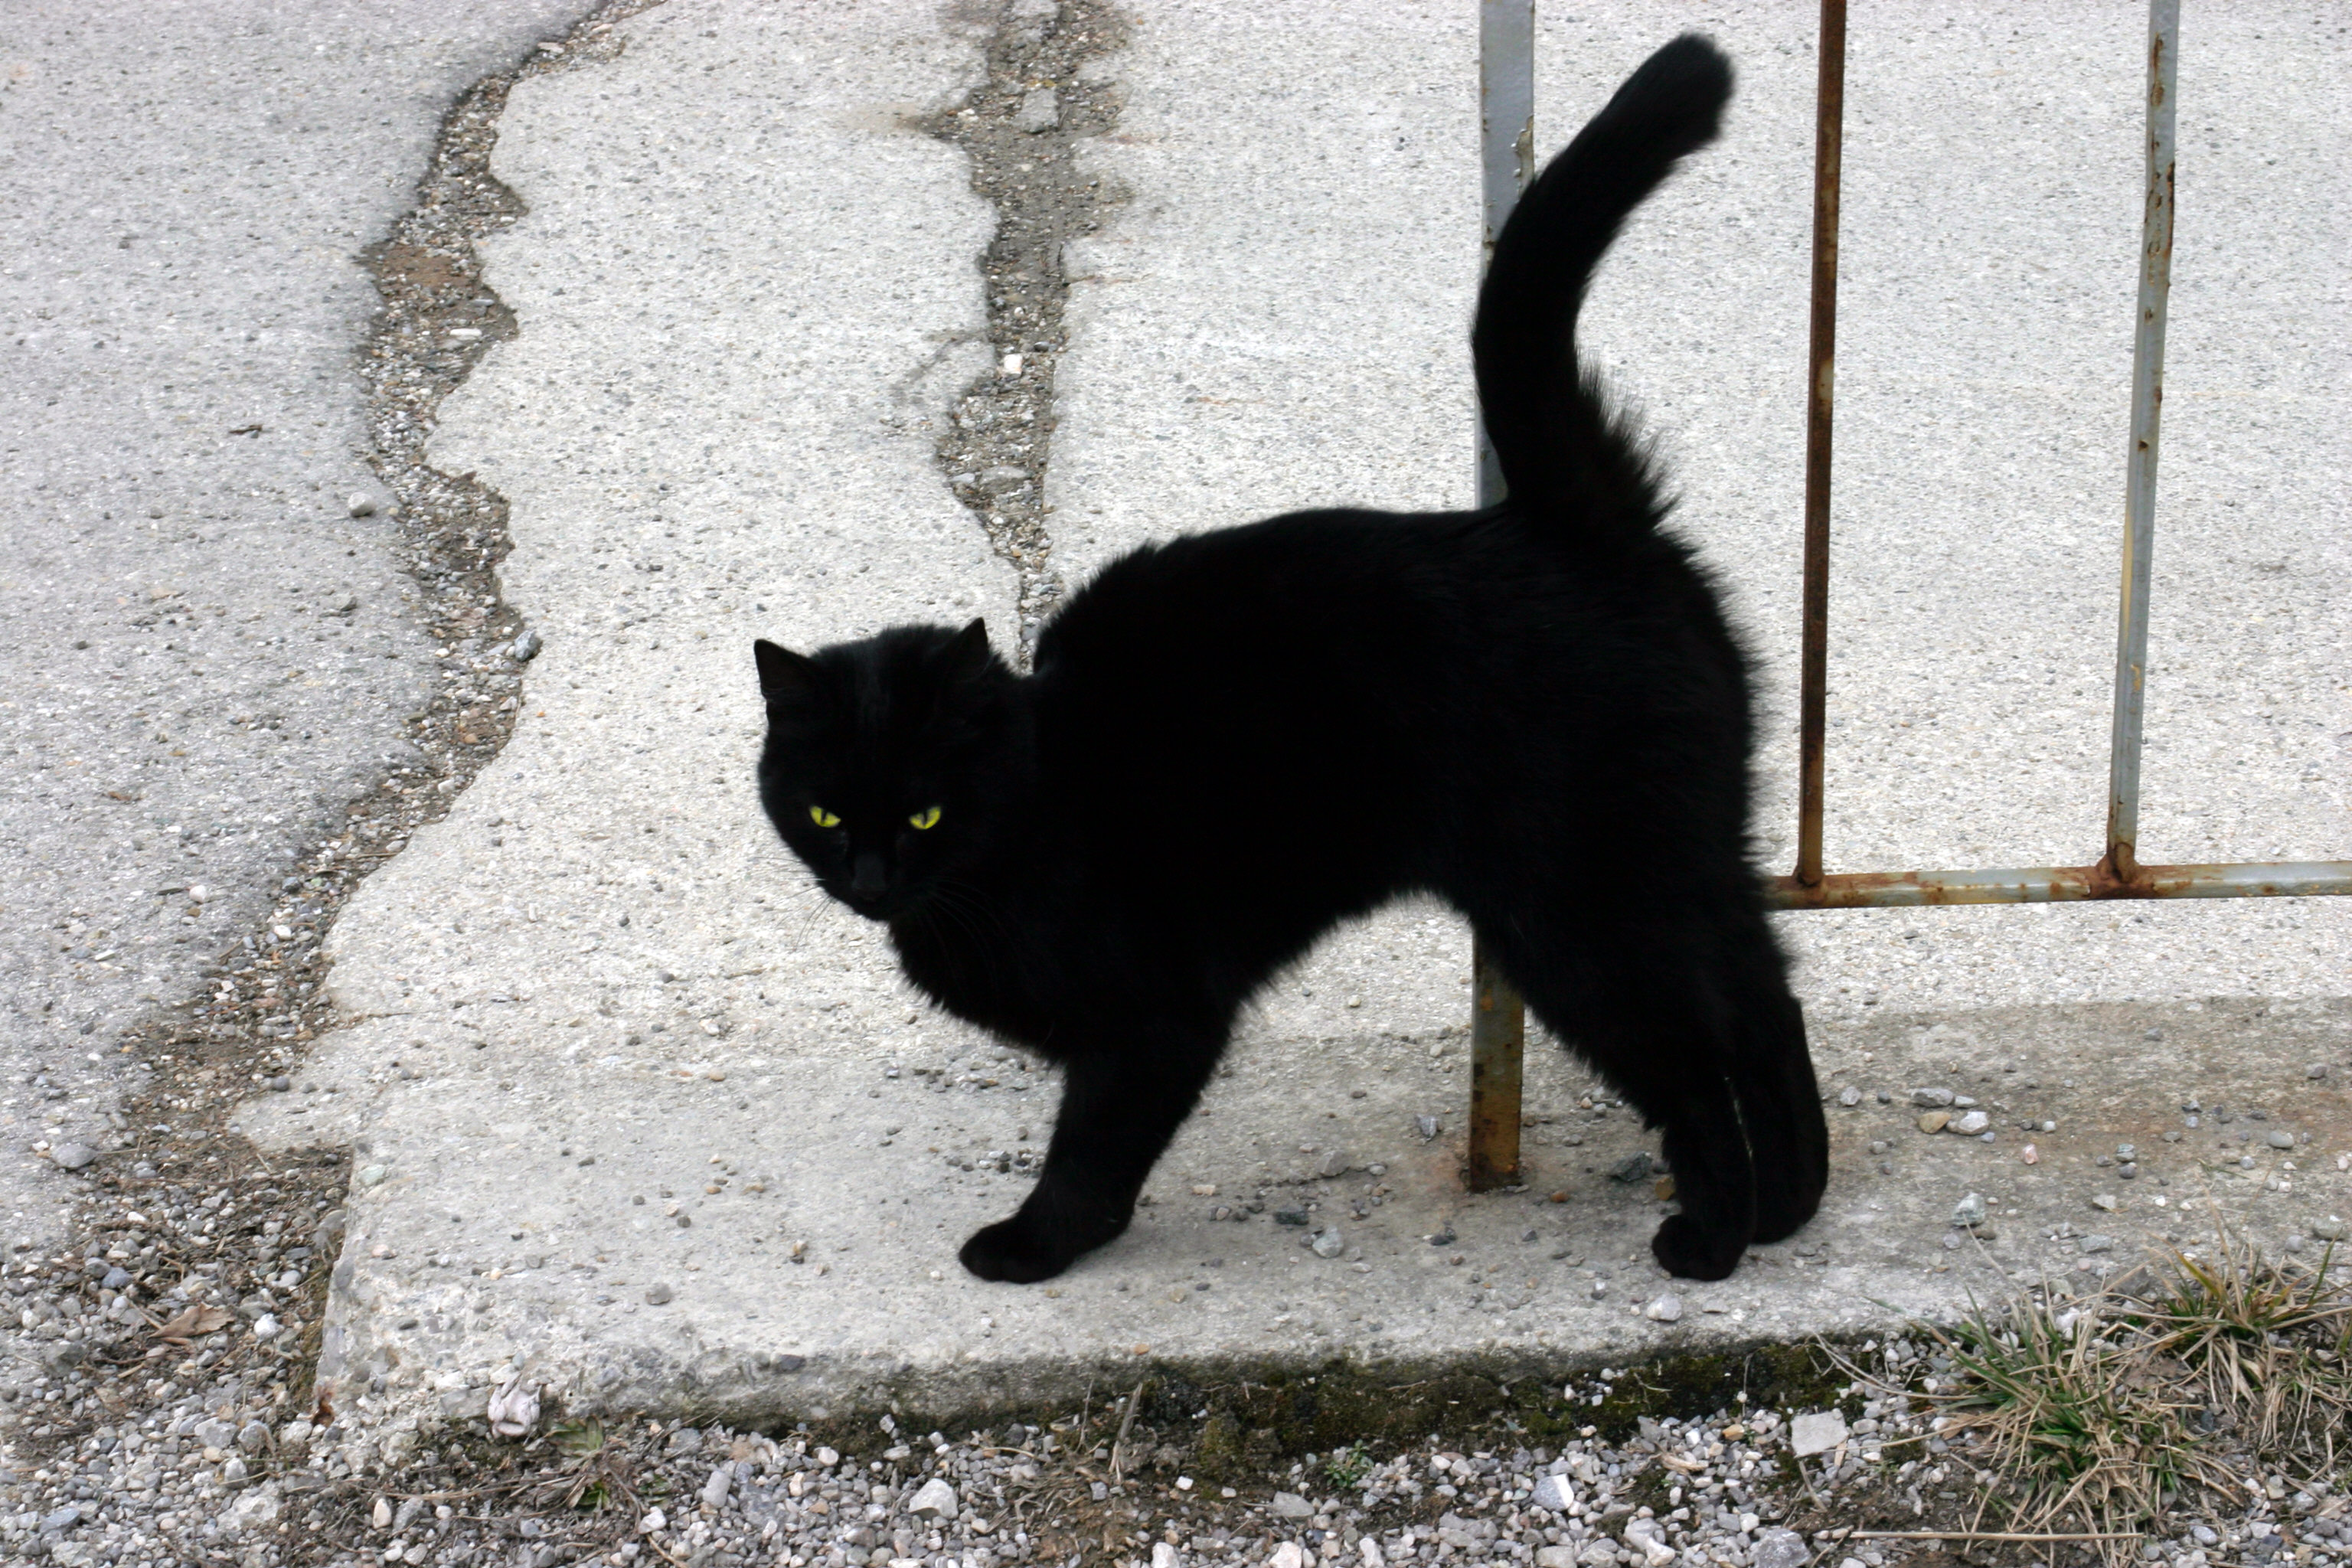 File:A Black Cat.jpg - Wikimedia Commons